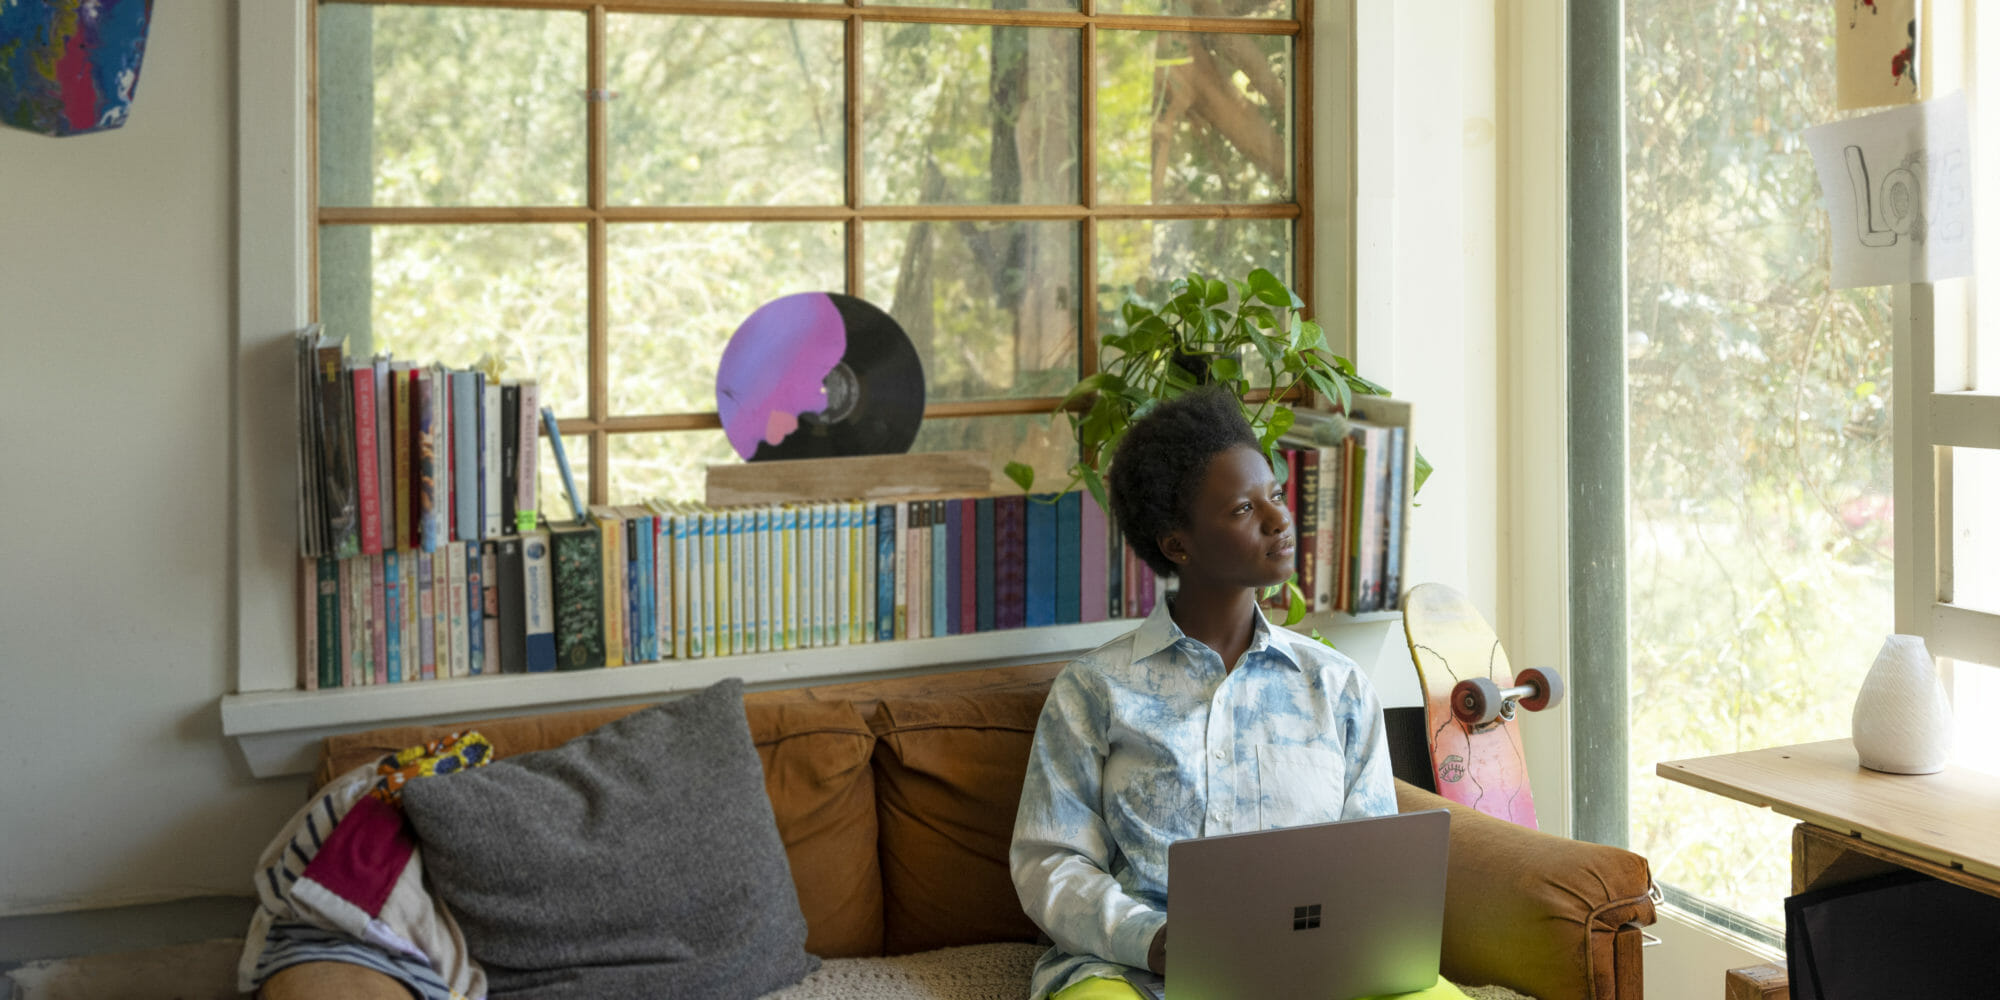 Adult female inside sitting on couch using Surface laptop